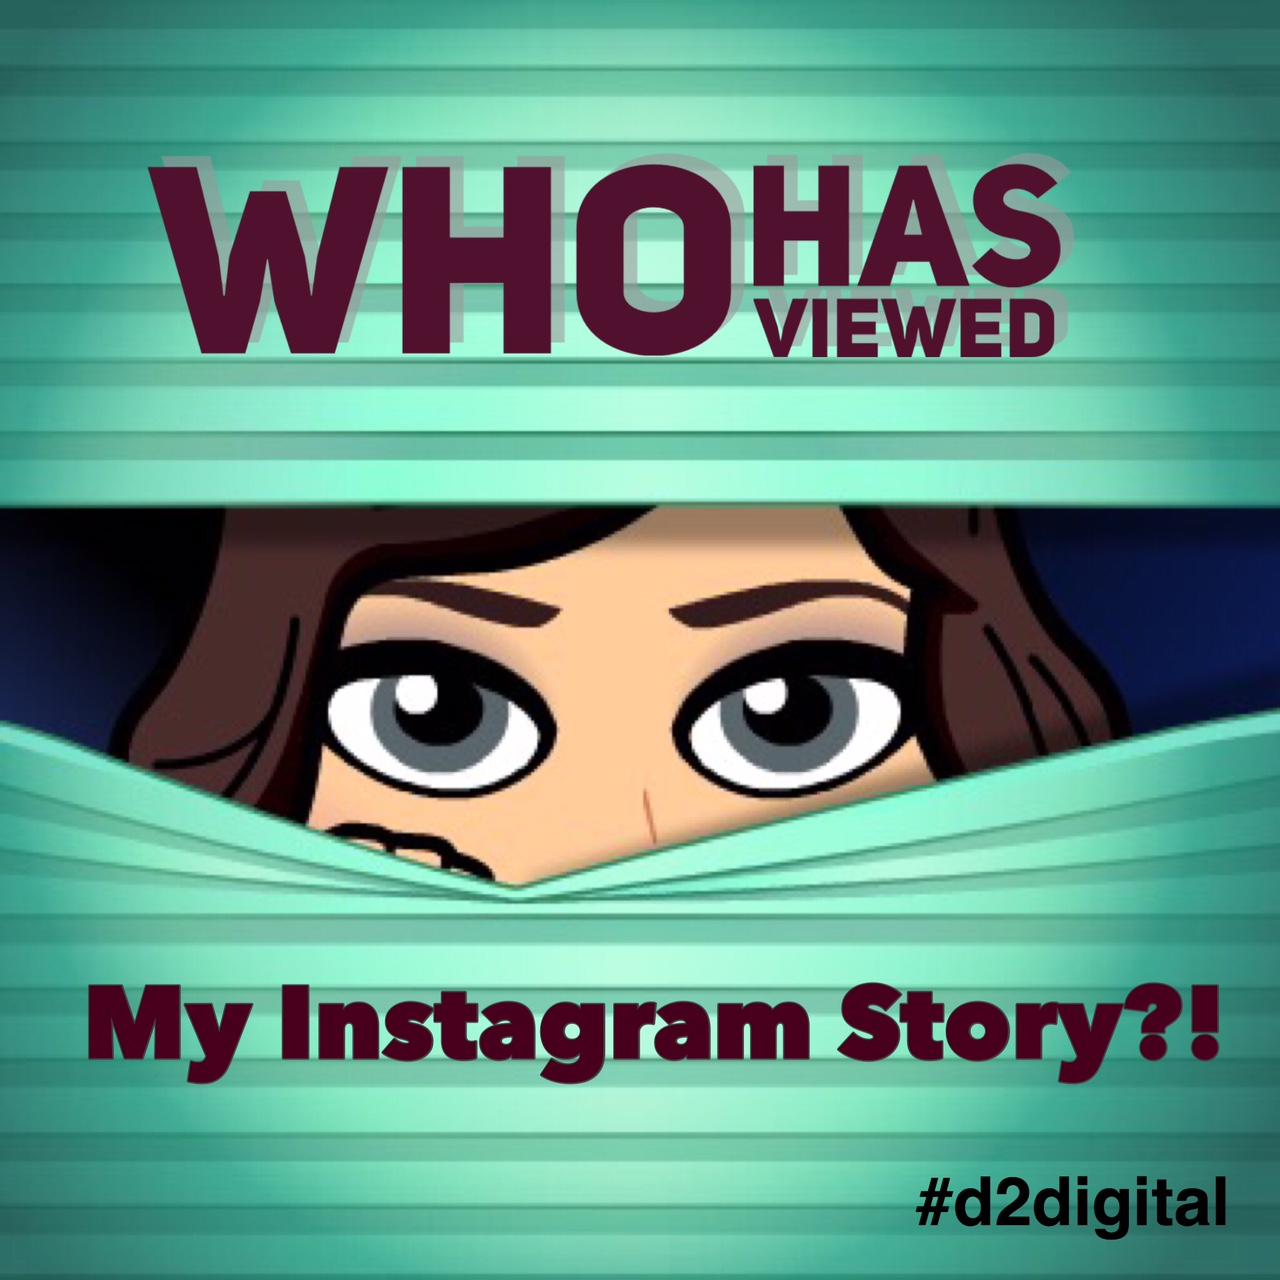 All You Need to Know About Instagram Stories